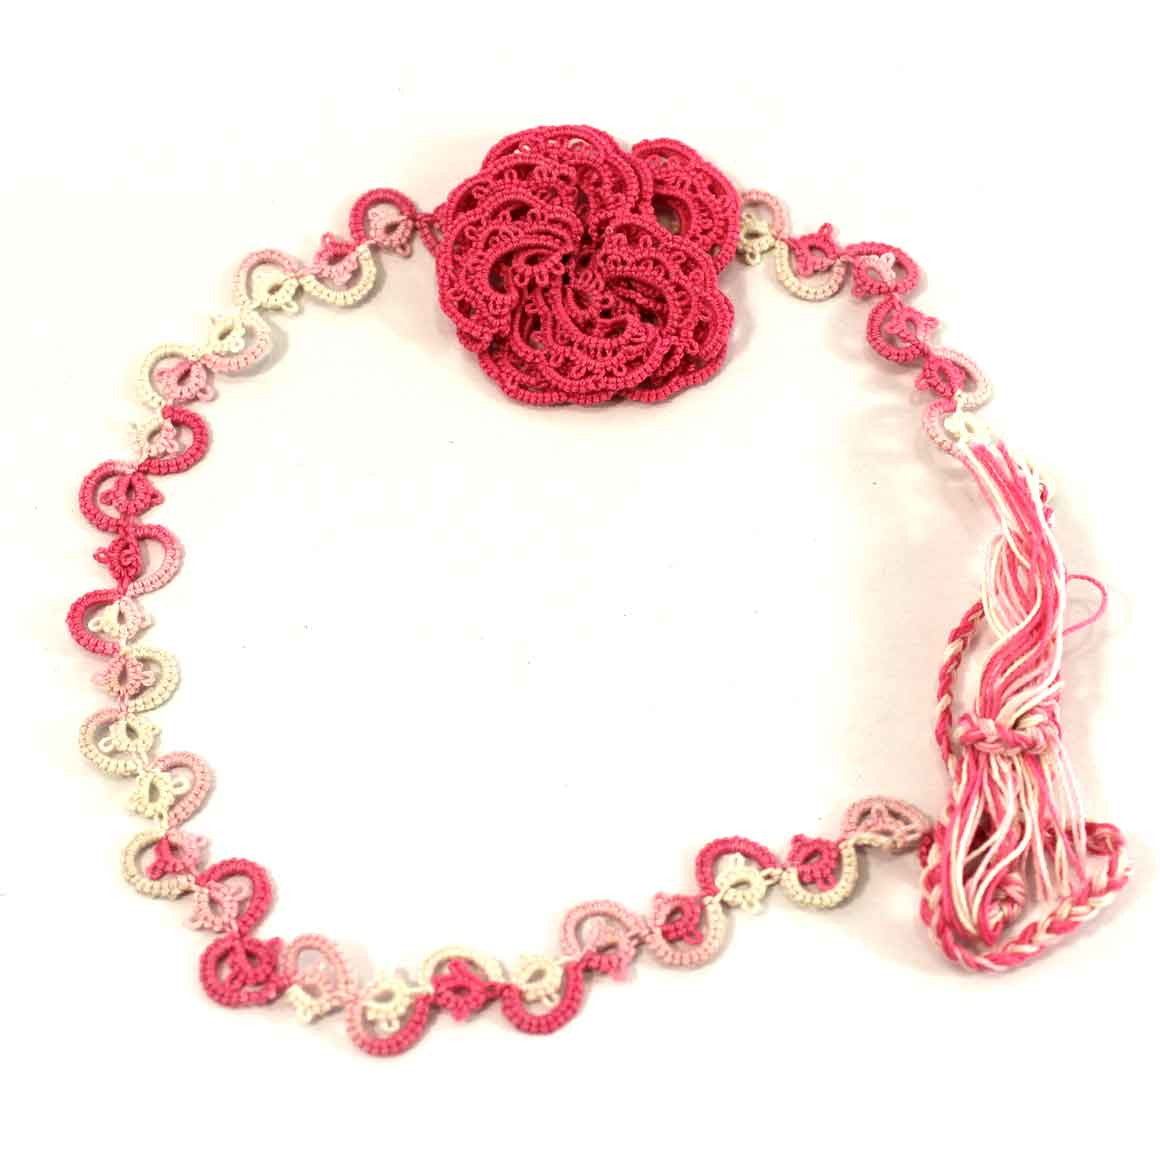 Fair Trade Ethical Tatted Headband Rose